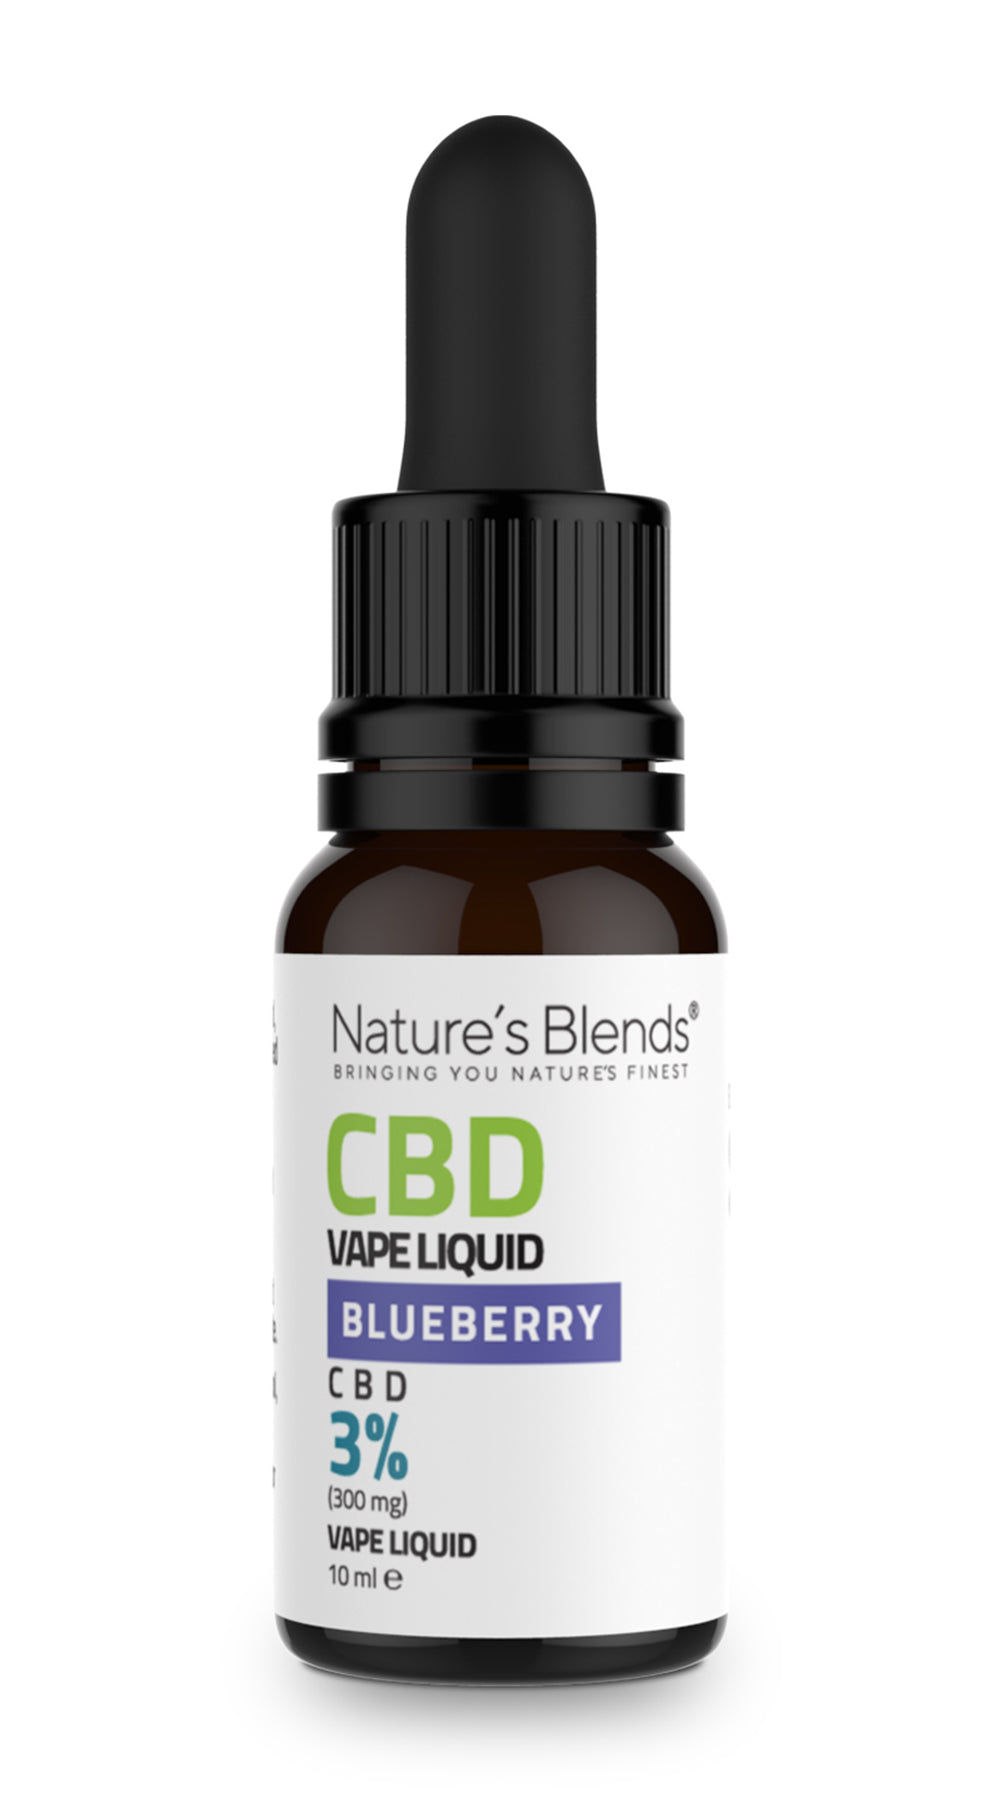 A 10ml bottle of 300mg cbd vape blueberry flavour by natures blends